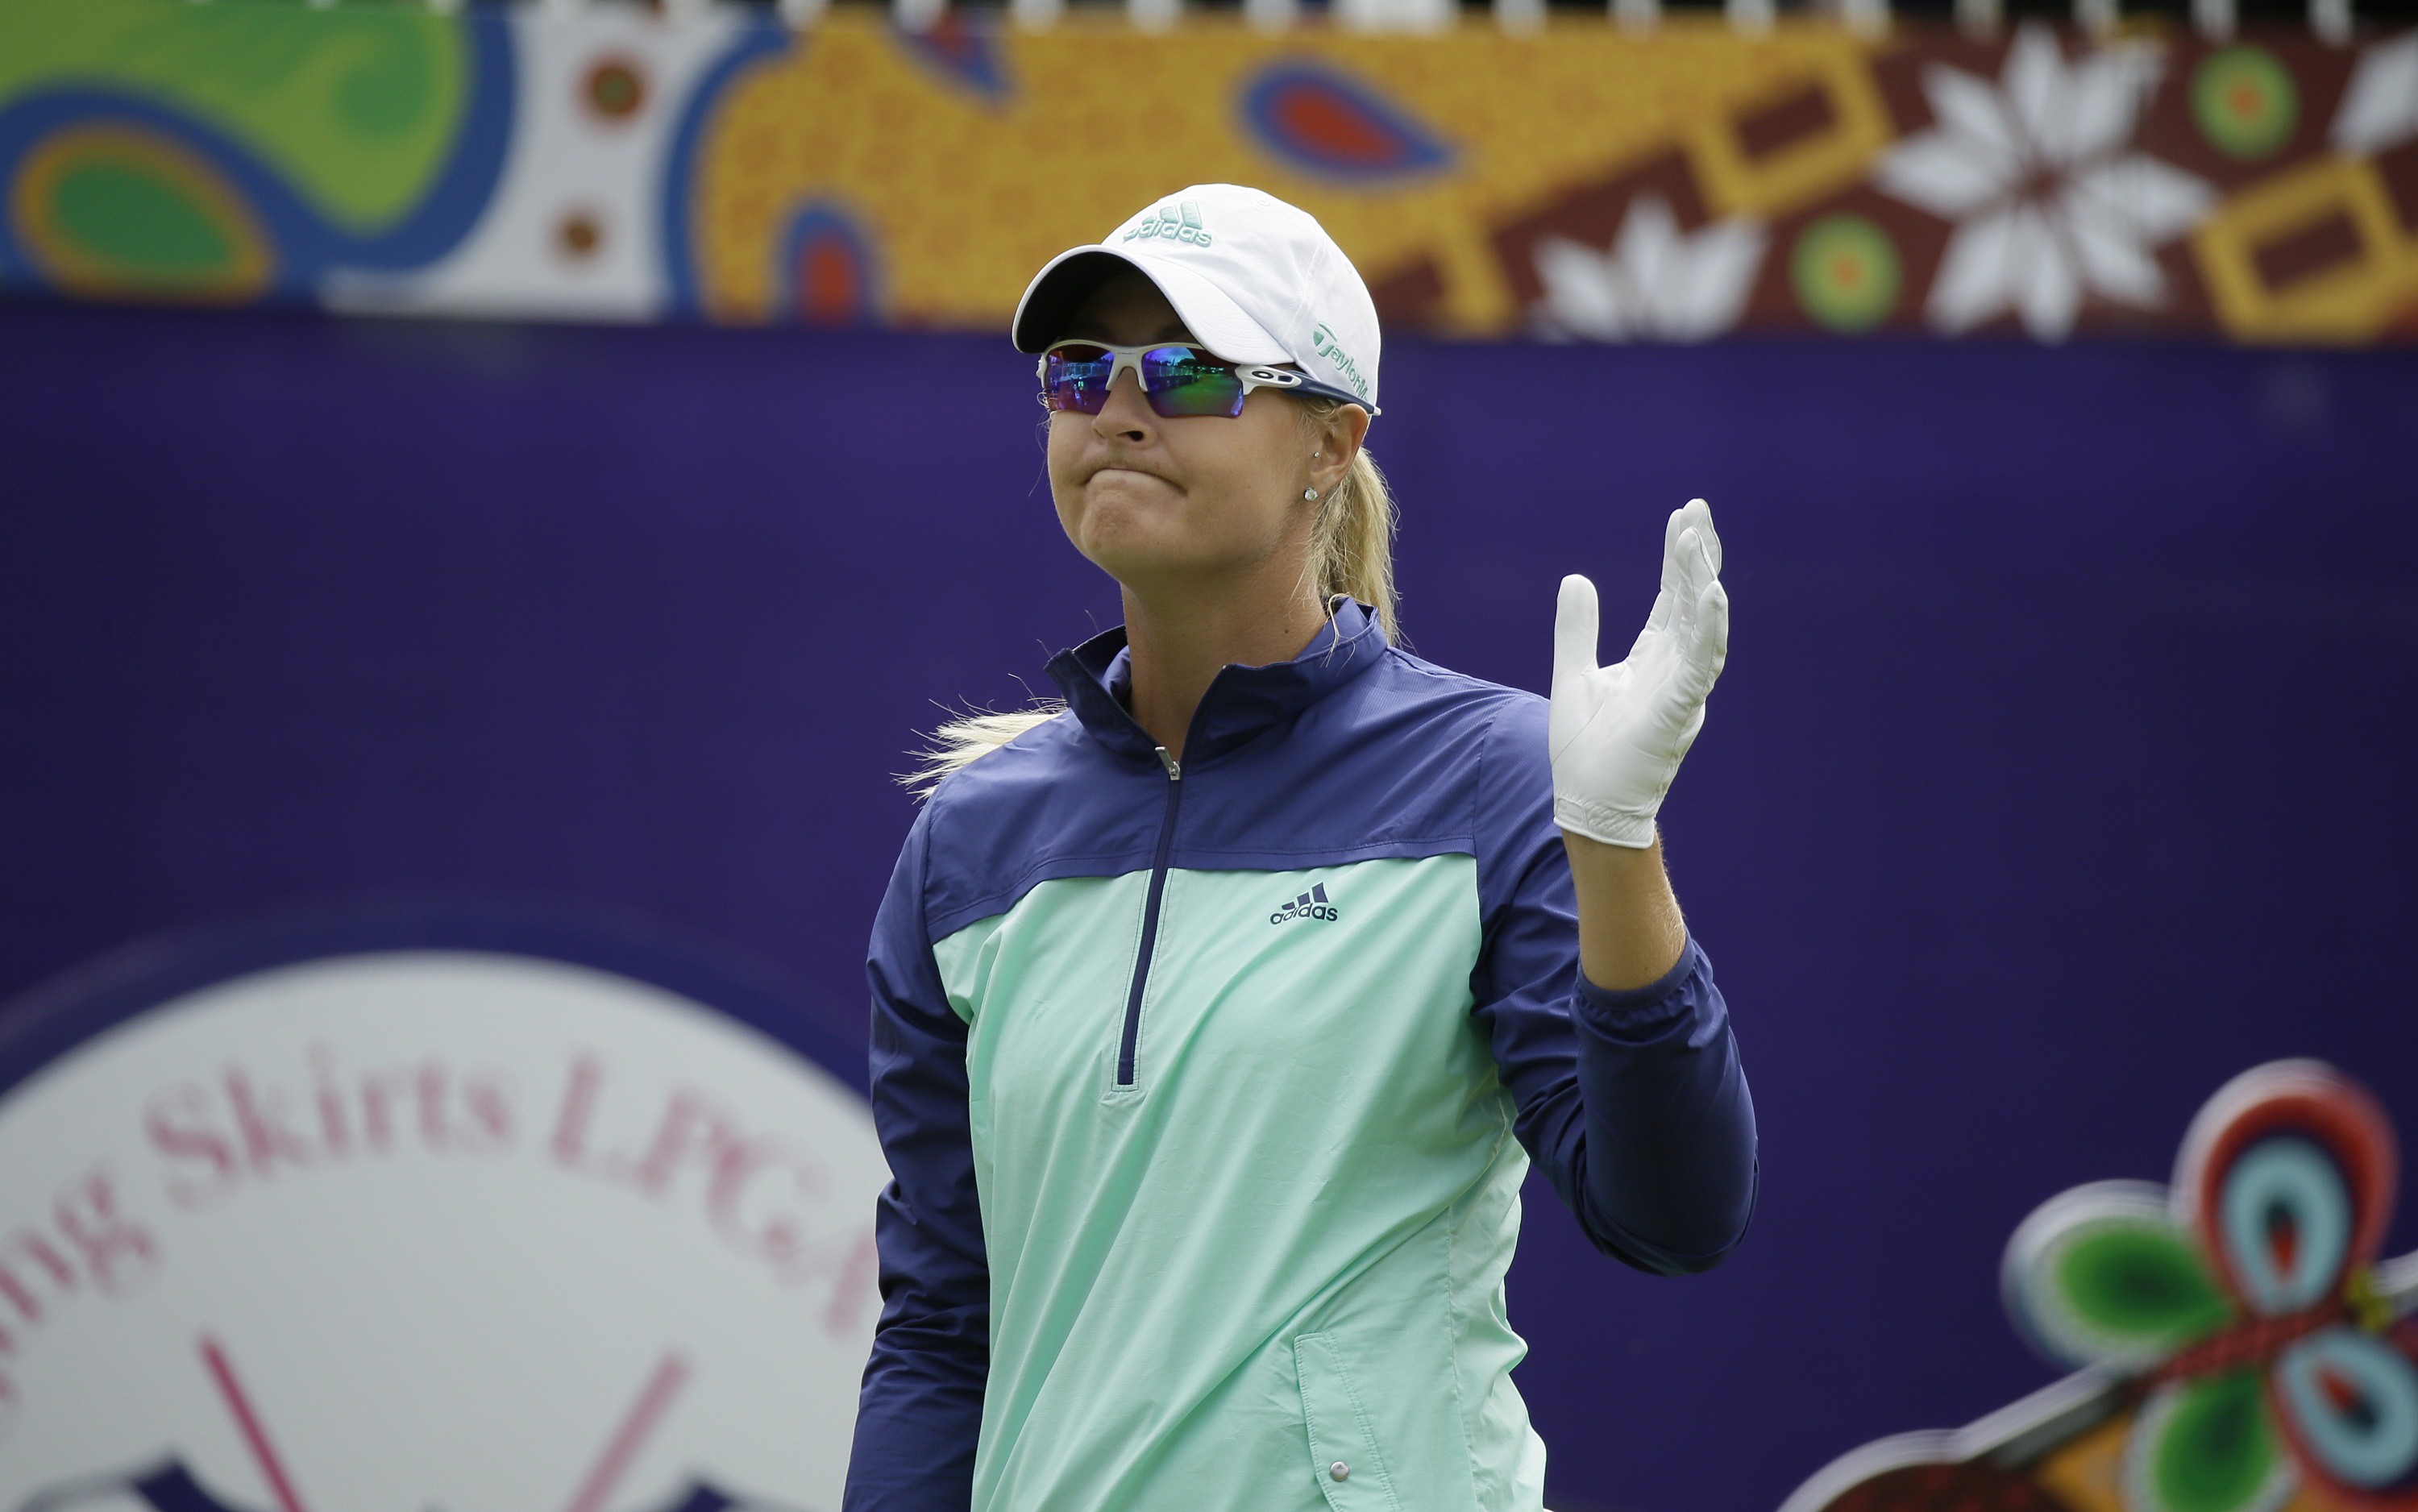 Anna Nordqvist, of Sweden, waves before hitting from the first tee of the Lake Merced Golf Club during the first round of the Swinging Skirts LPGA Classic golf tournament Thursday, April 21, 2016, in Daly City, Calif. (AP Photo/Eric Risberg)